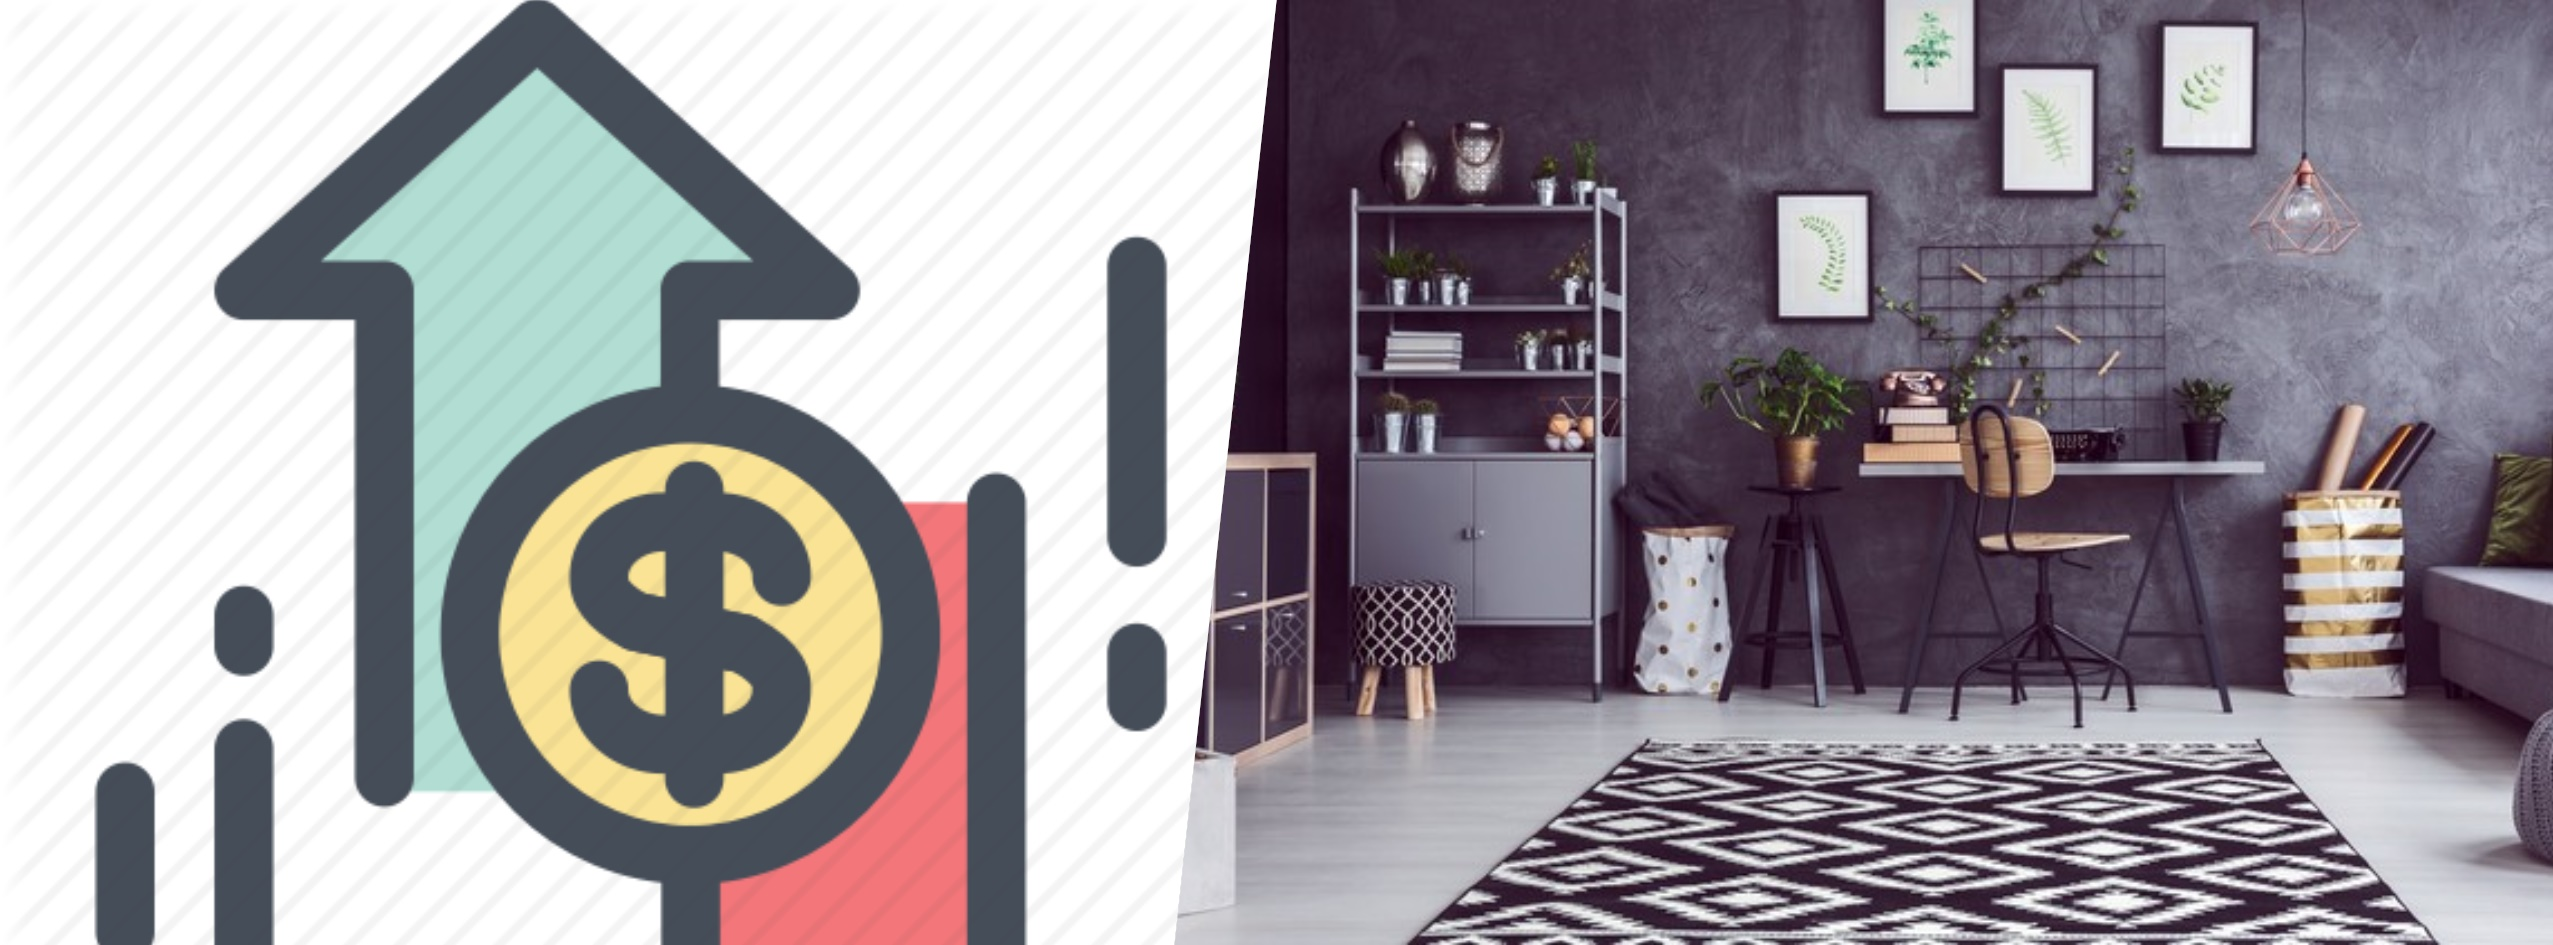 How to charge for interior design services design to dream - What to charge for interior design services ...